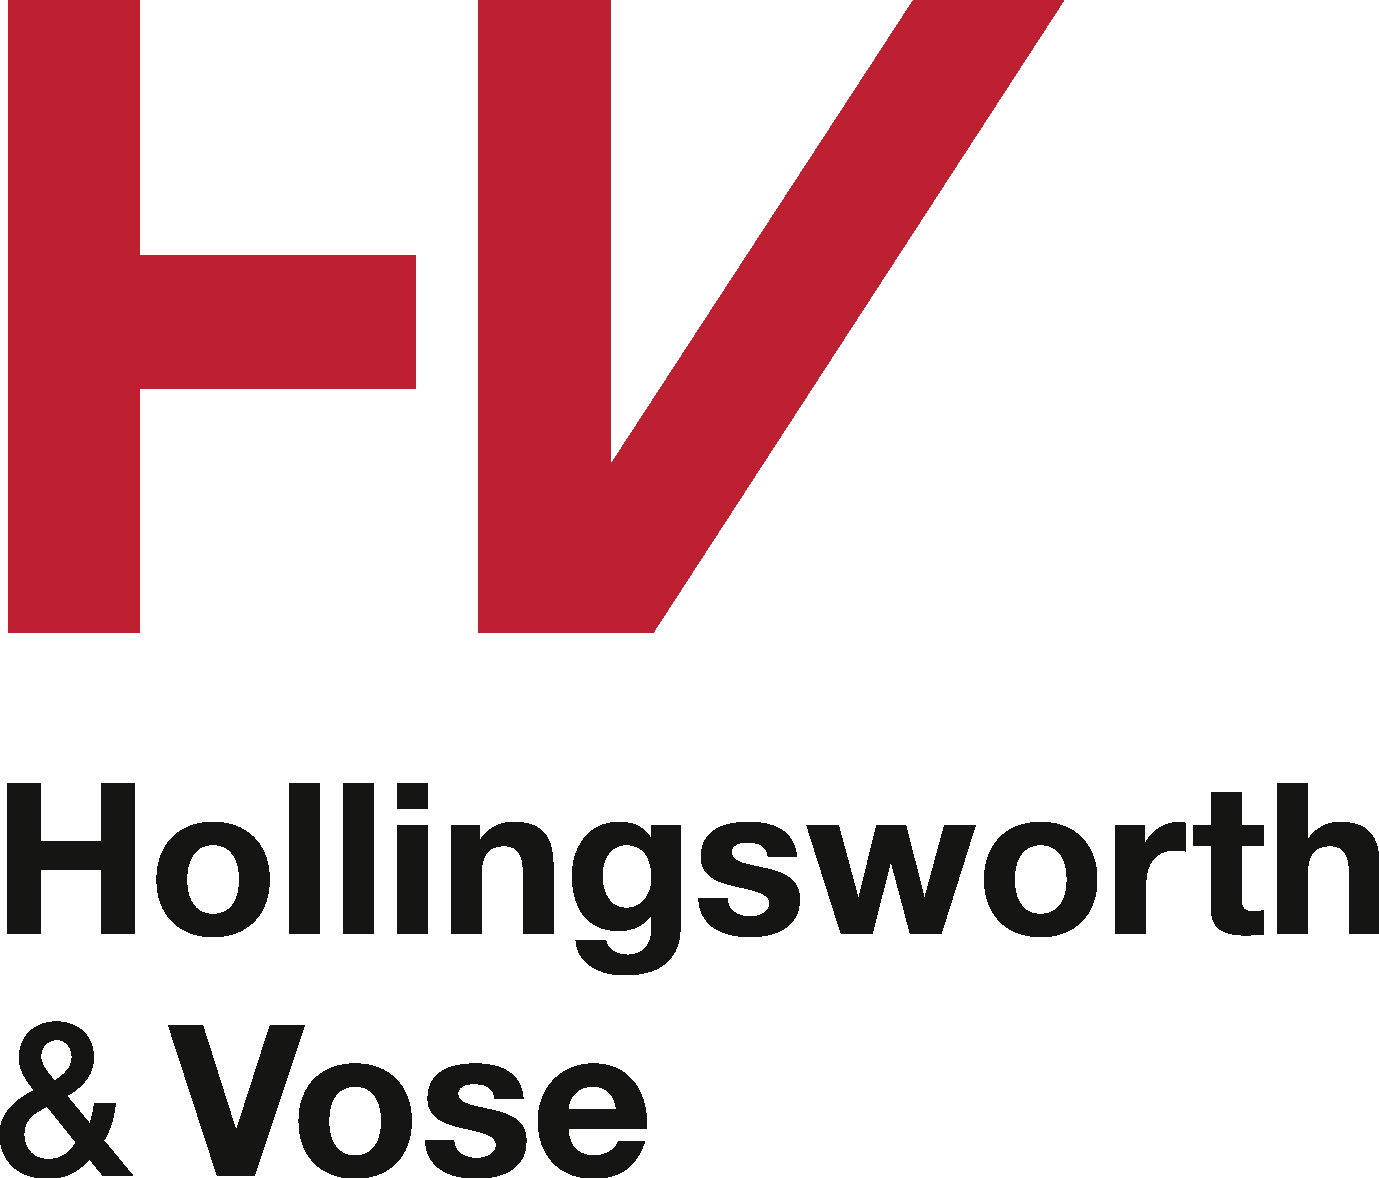 Hollingsworth & Vose GmbH